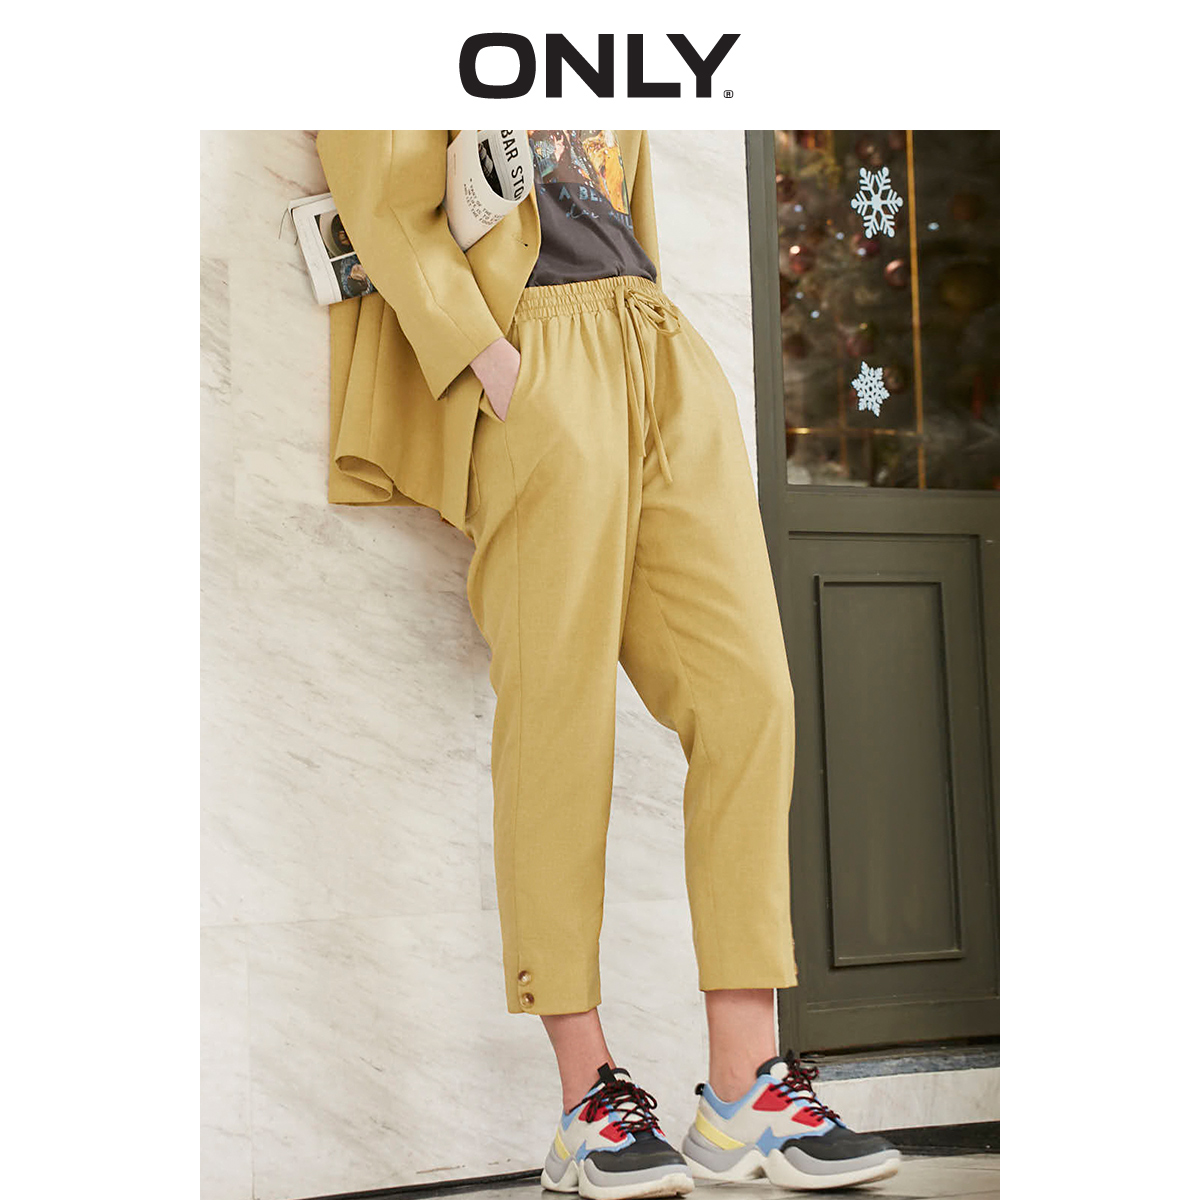 ONLY  Spring Summer Women's Loose Fit High-rise Casual Crop Pants |119150529